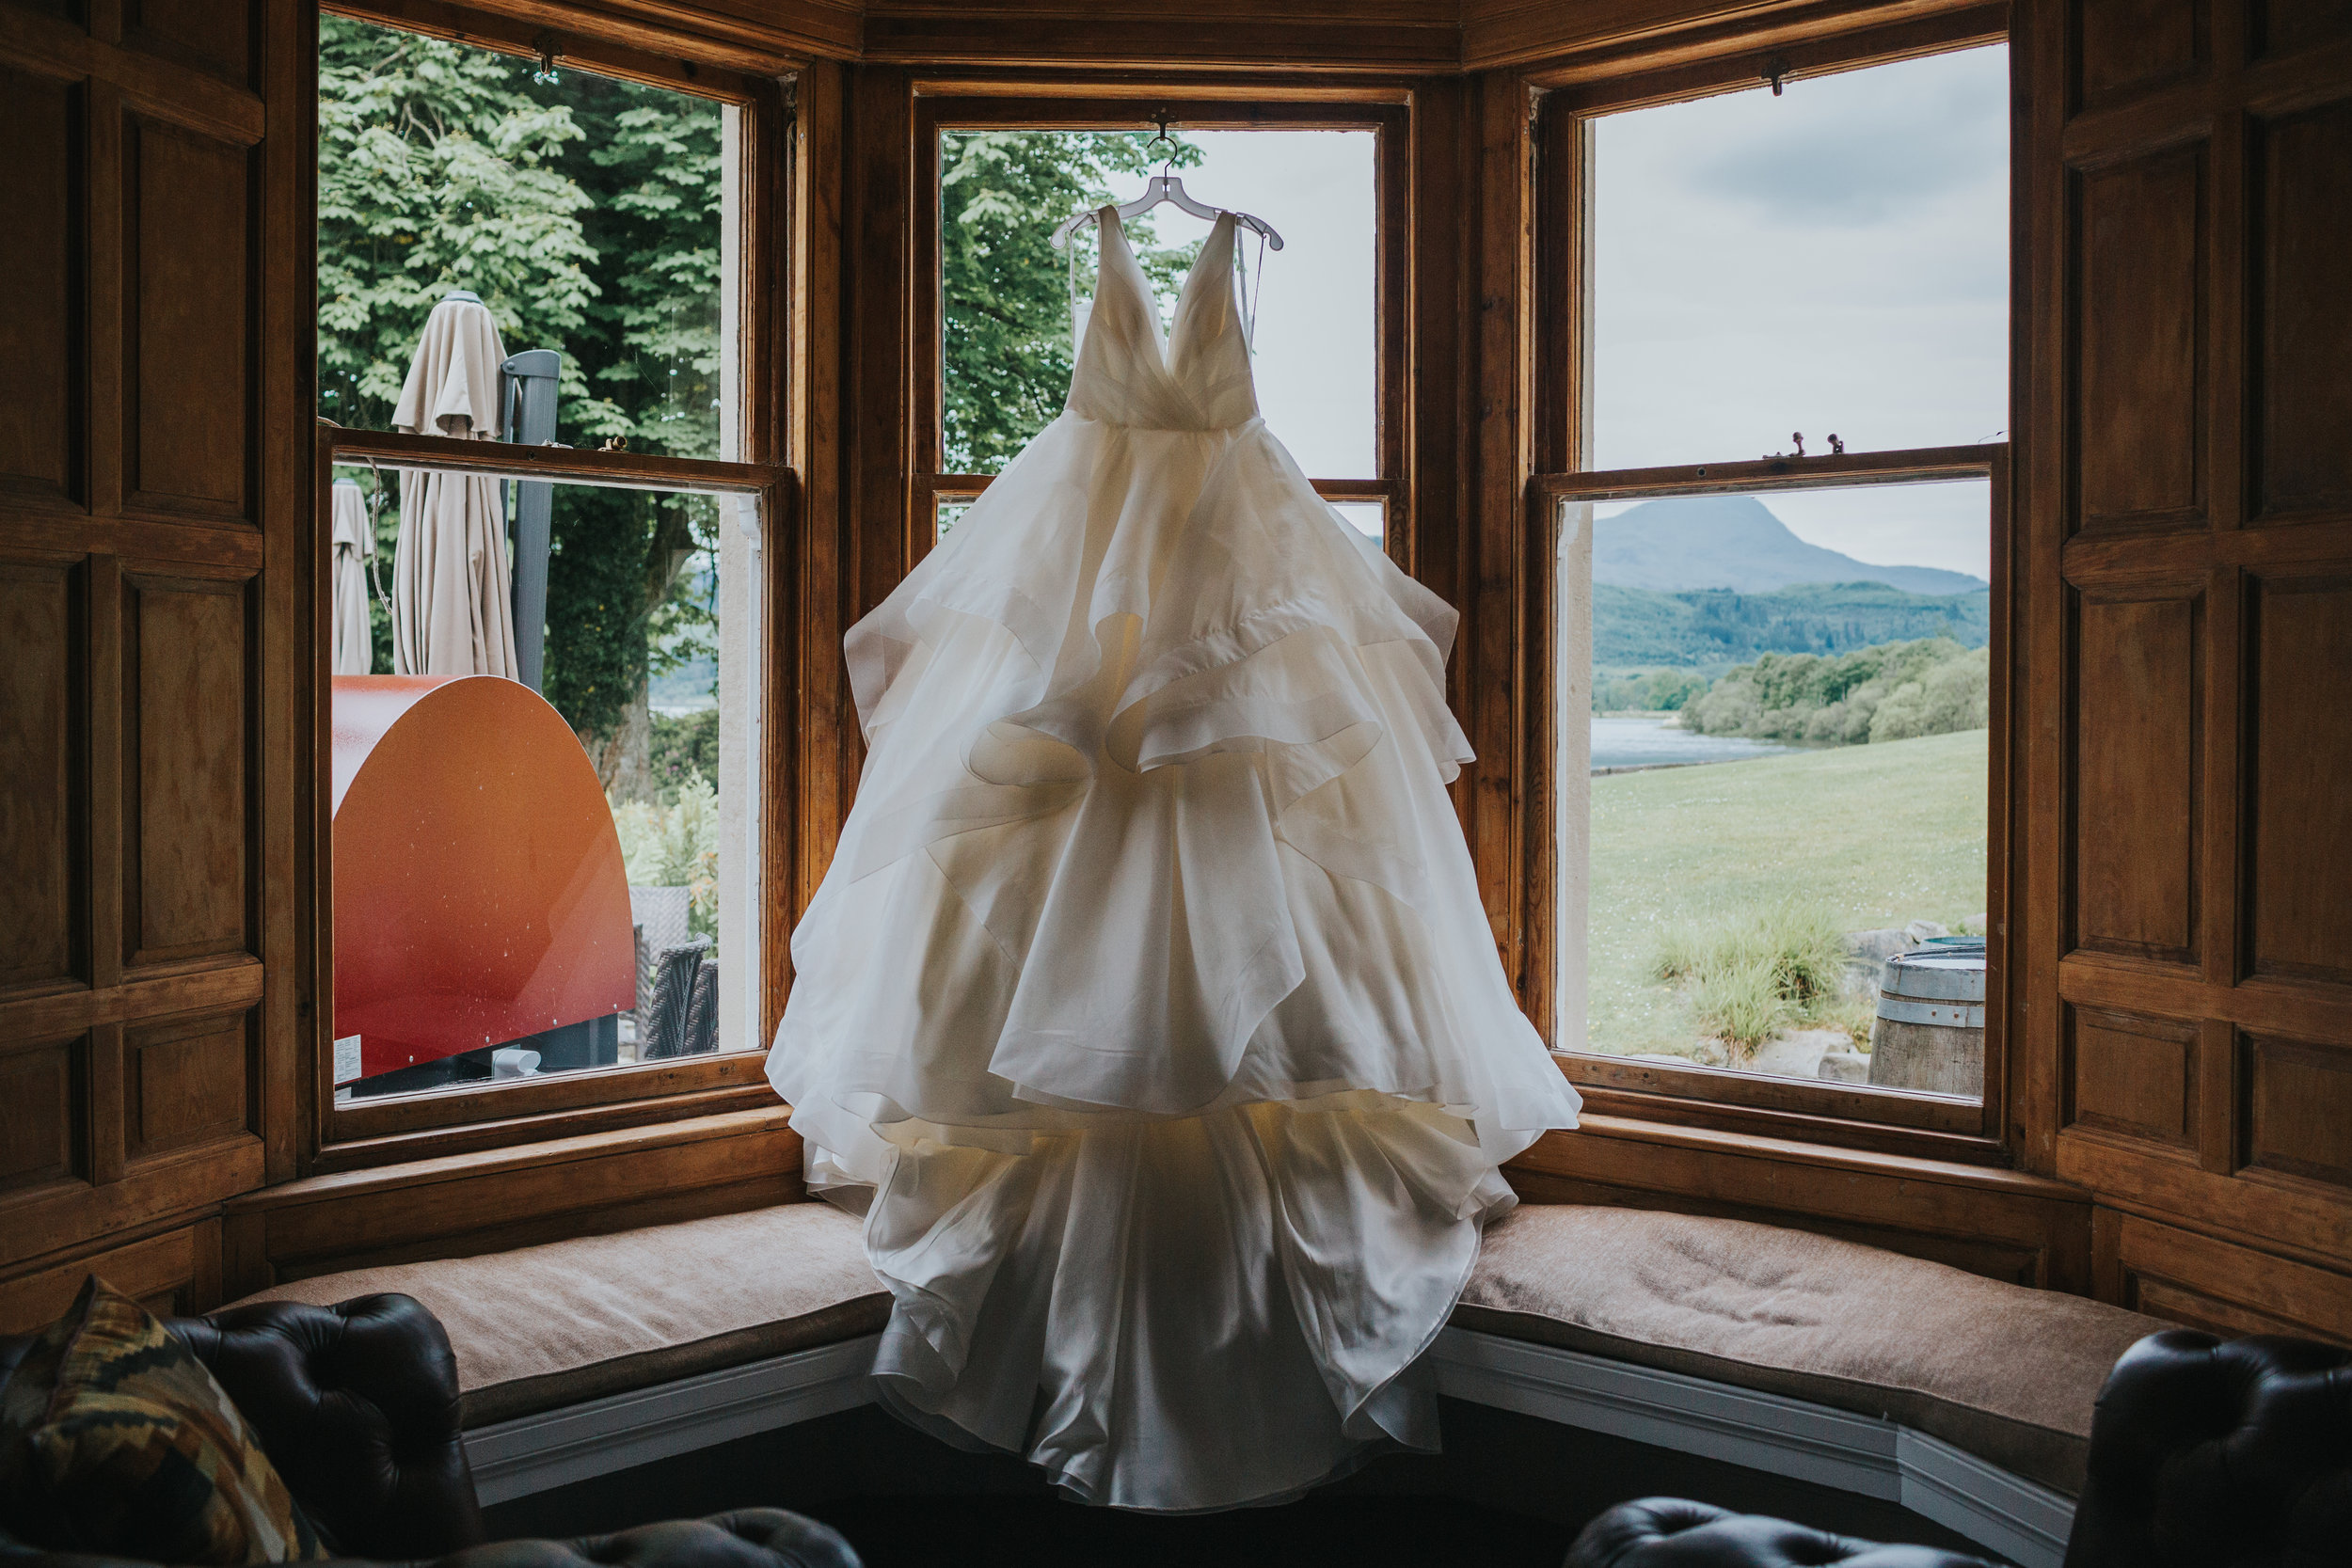 Dress hanging in window at Altskeith Country House